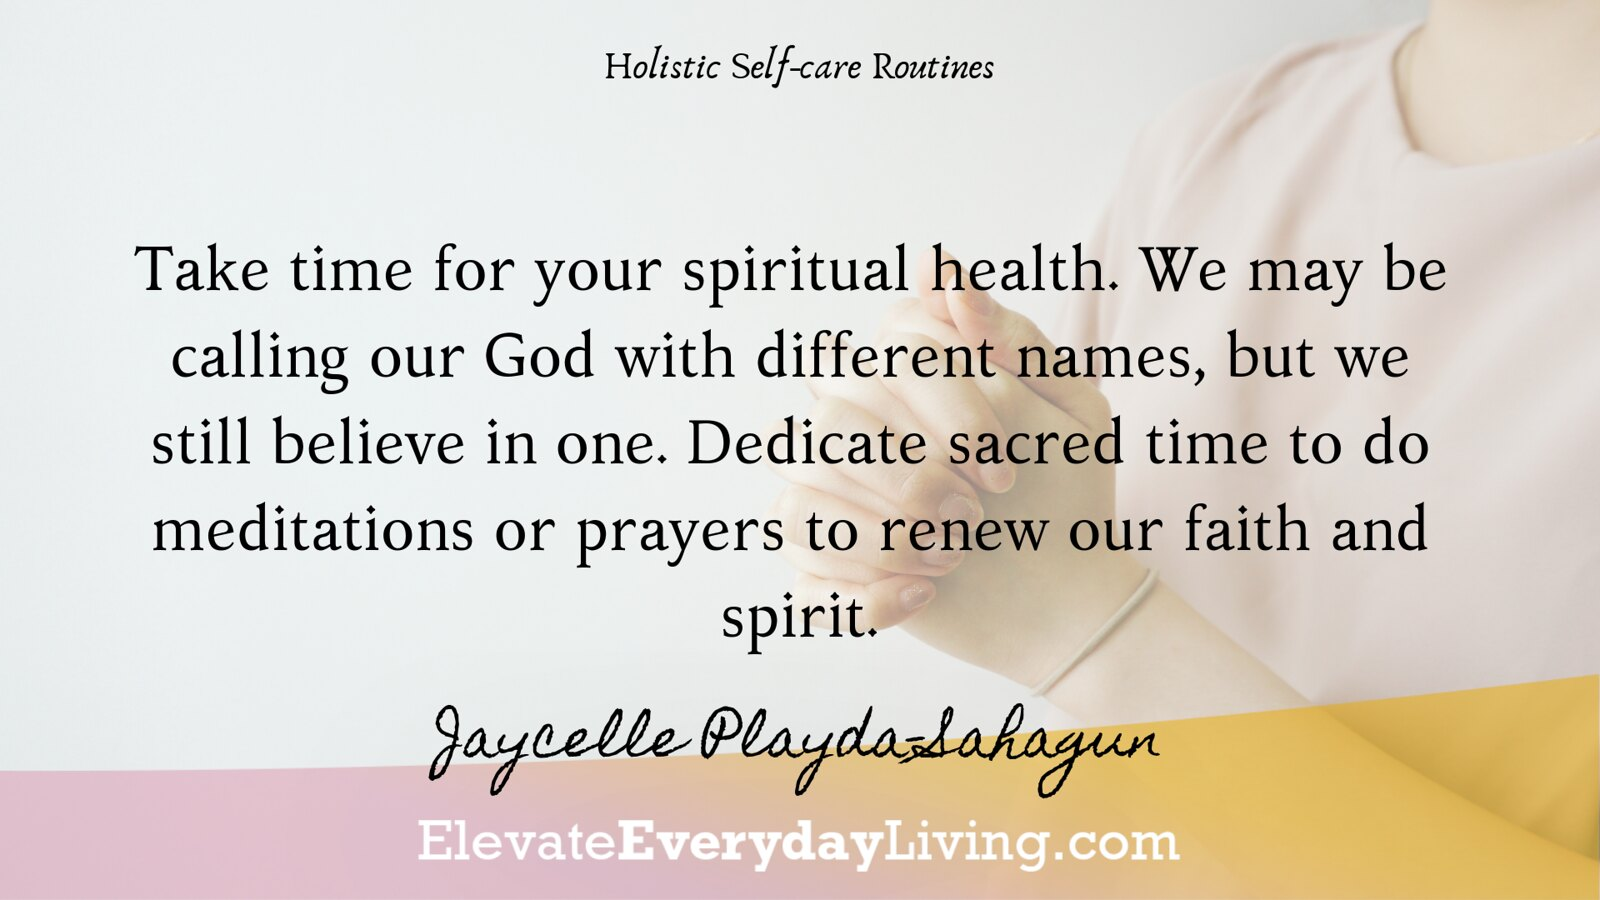 Take time for your spiritual health